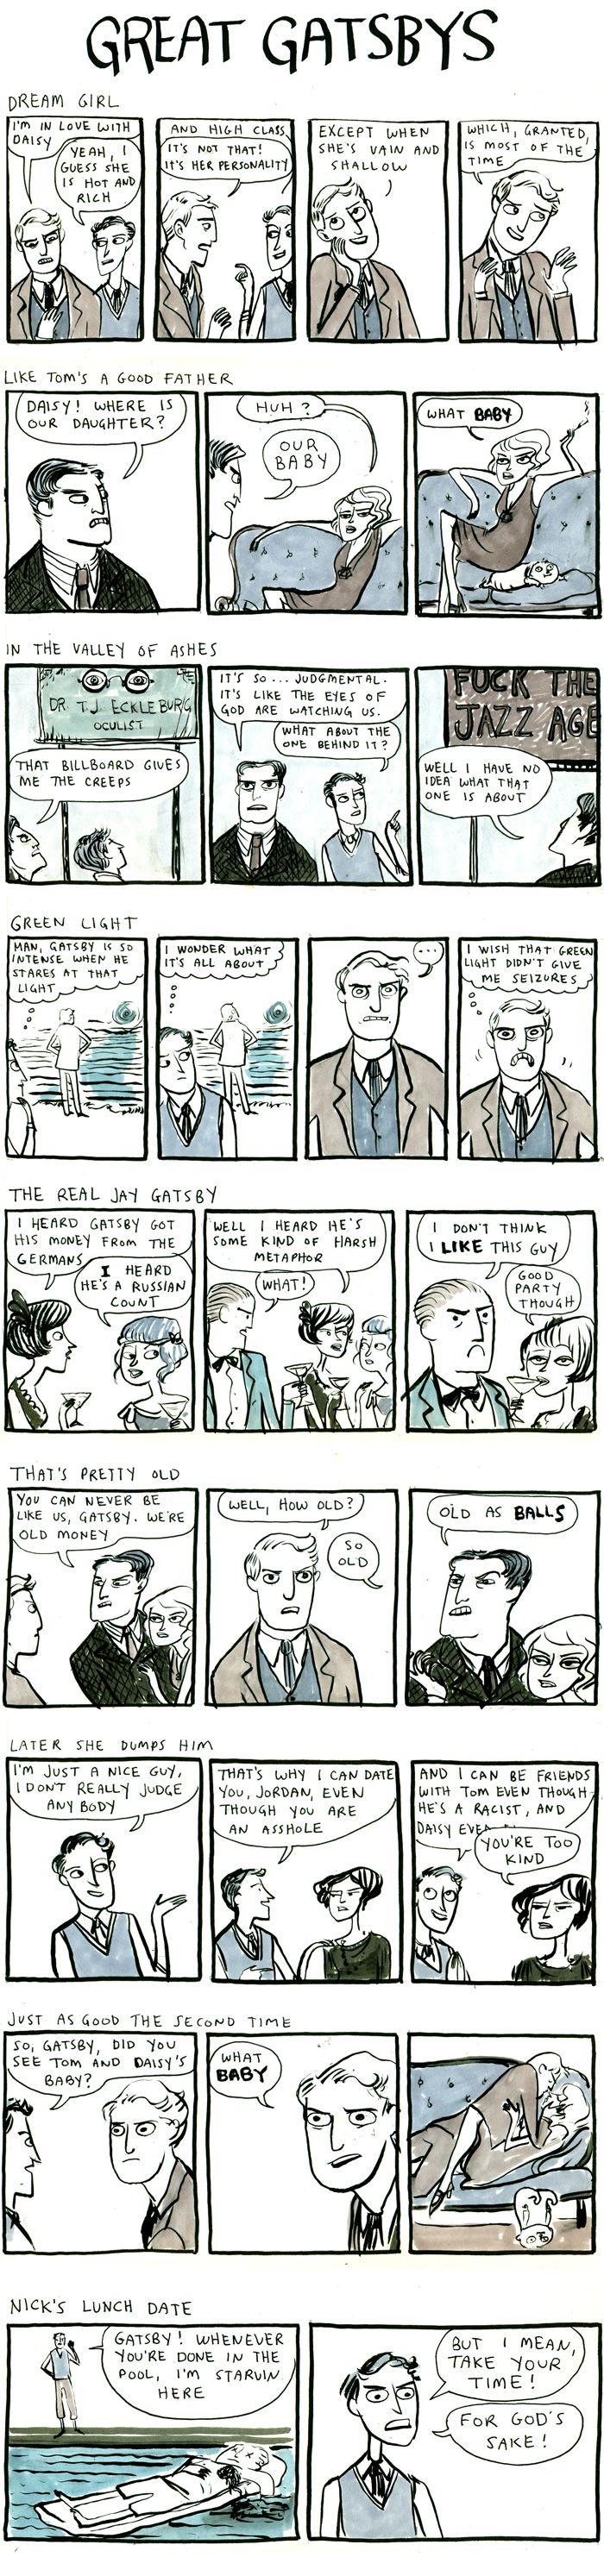 Gatsby Comics. This website has great comics from Great Gatsby to Wuthering Heights.